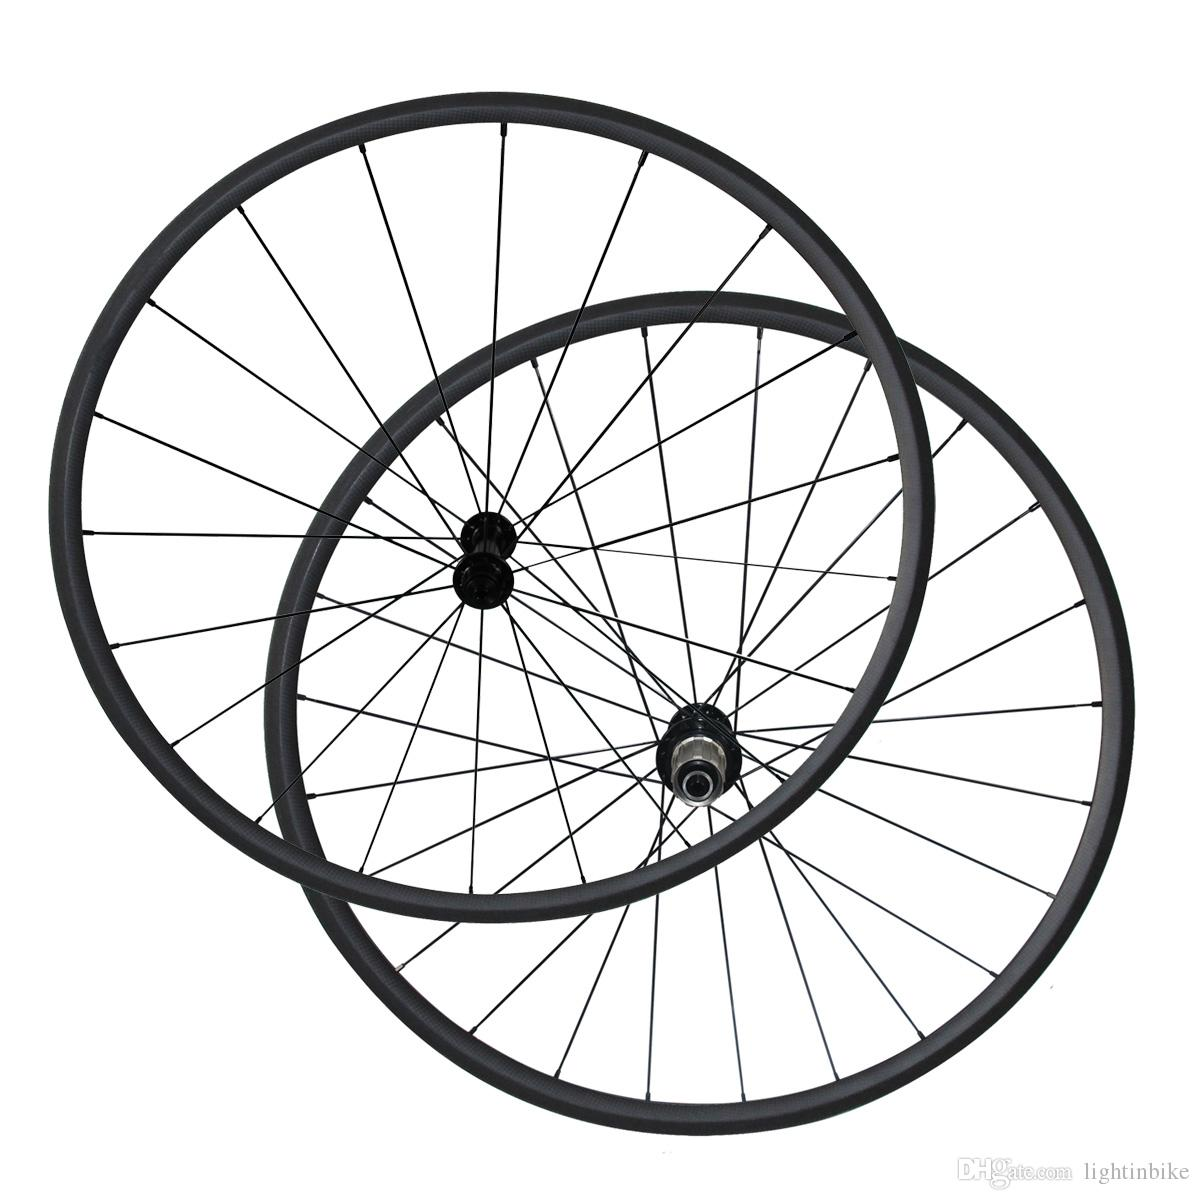 1330g Only 23mm Rim Width Carbon 24mm Clincher Bike Wheels